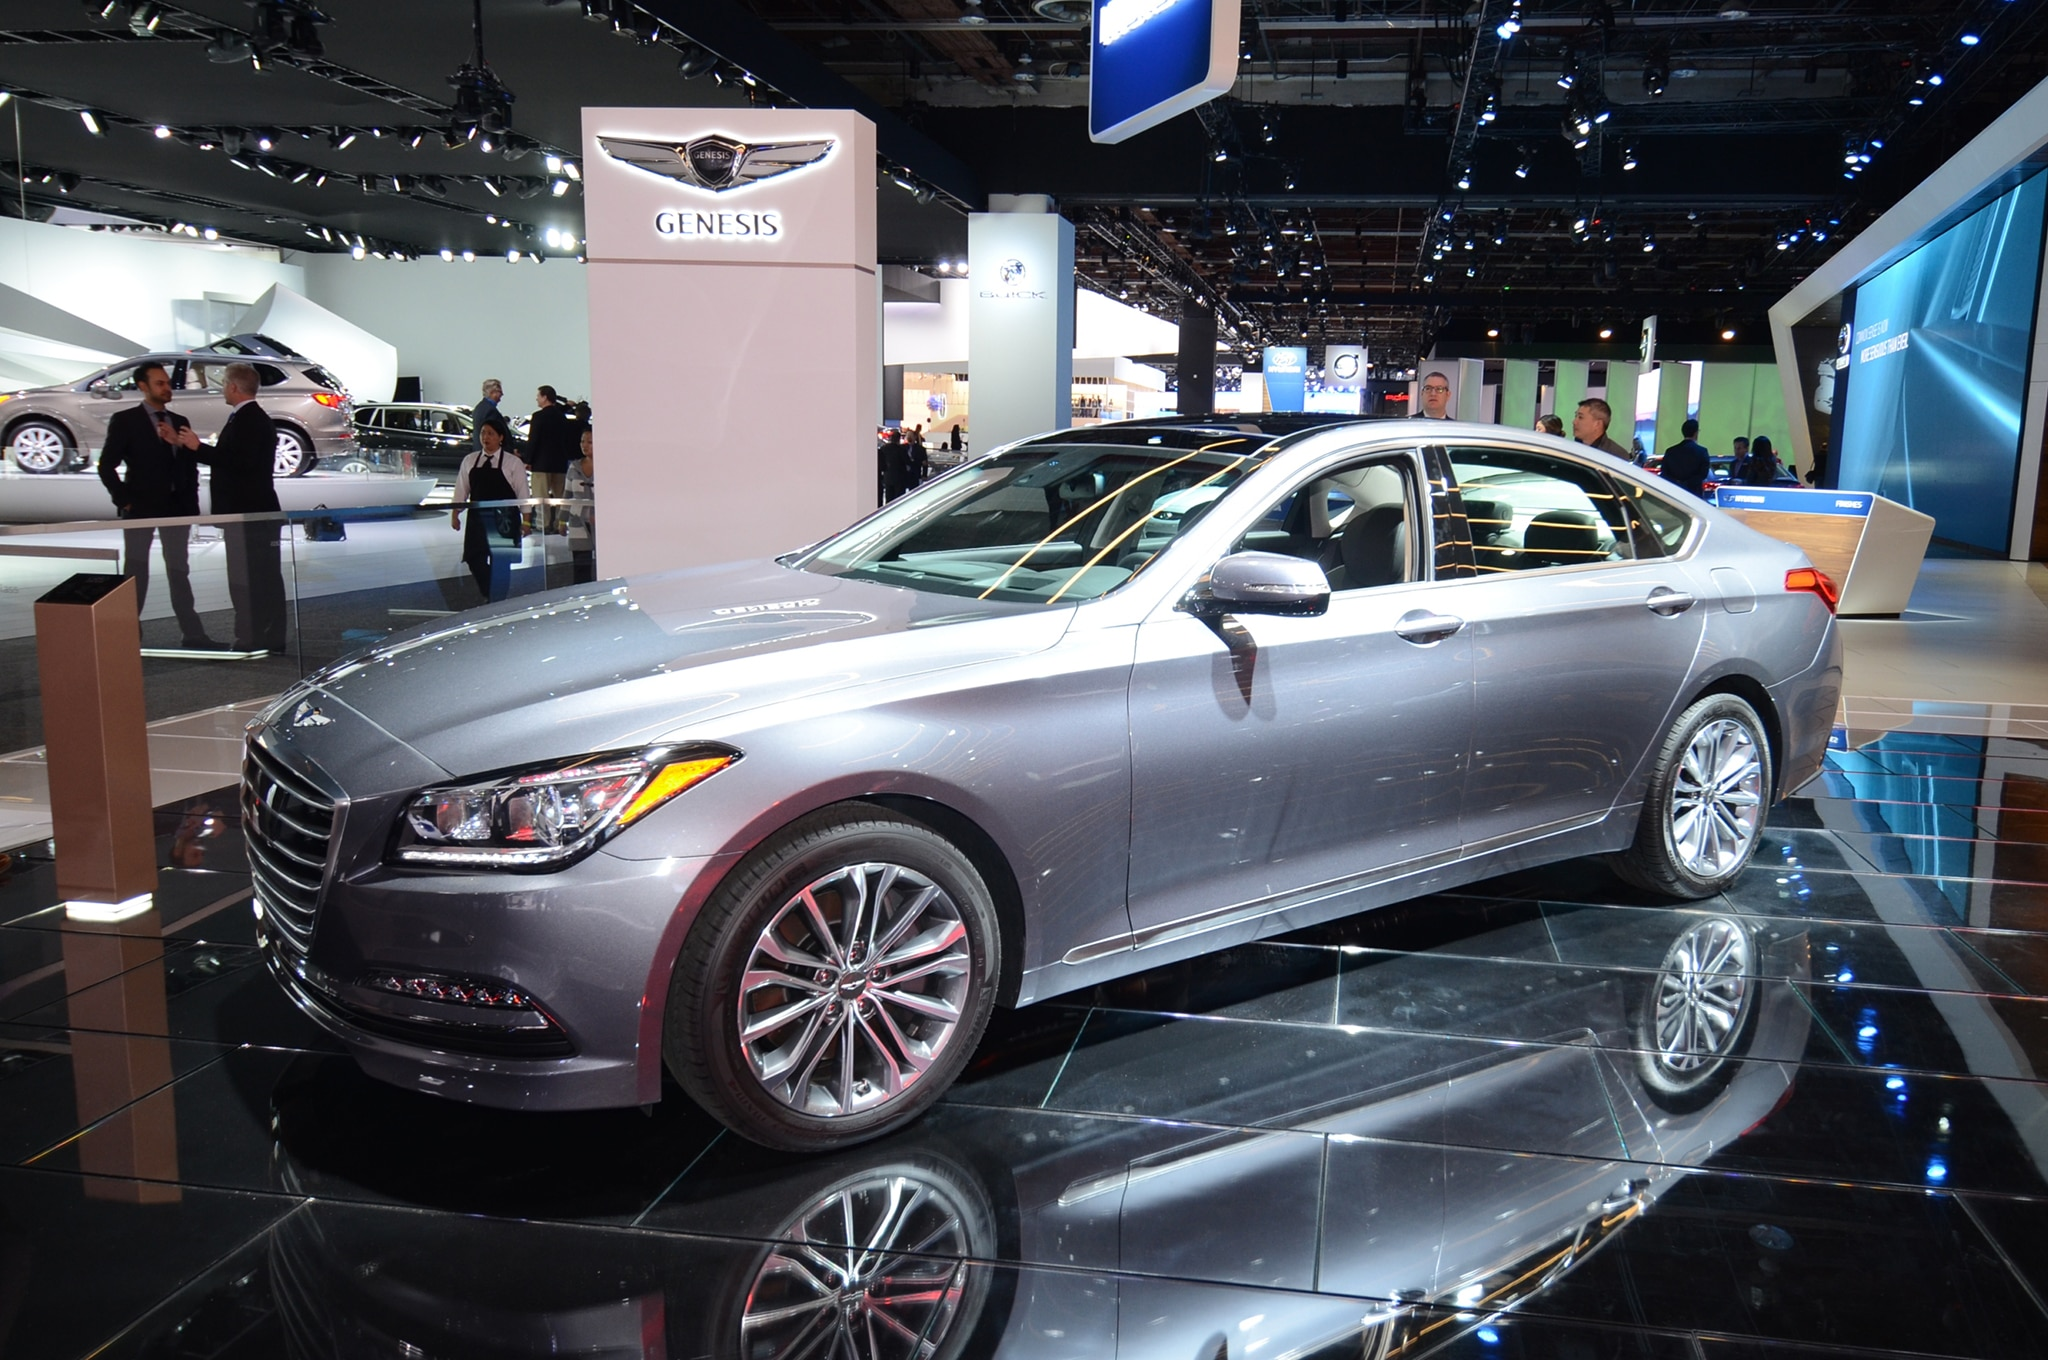 2017 Genesis G80 Sedan Is A Rebadged Hyundai Genesis